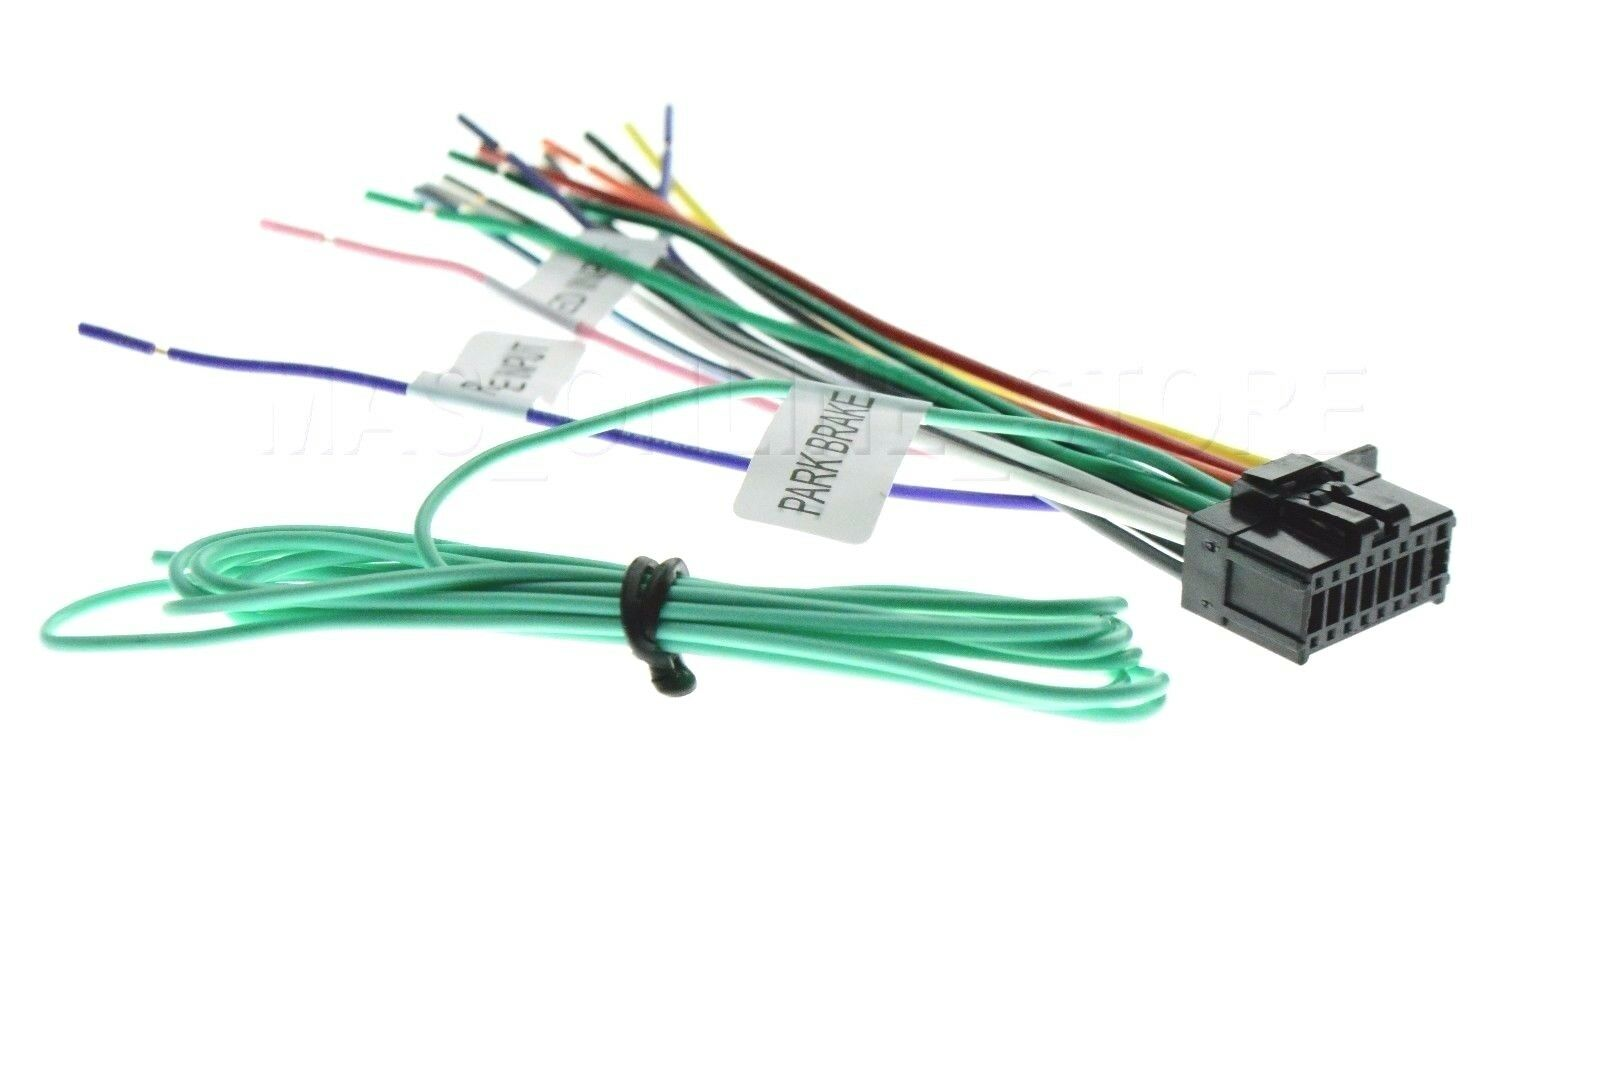 s l1600 wire harness for pioneer avhx391bhs avh x391bhs *pay today ships Wiring Harness Diagram at bayanpartner.co